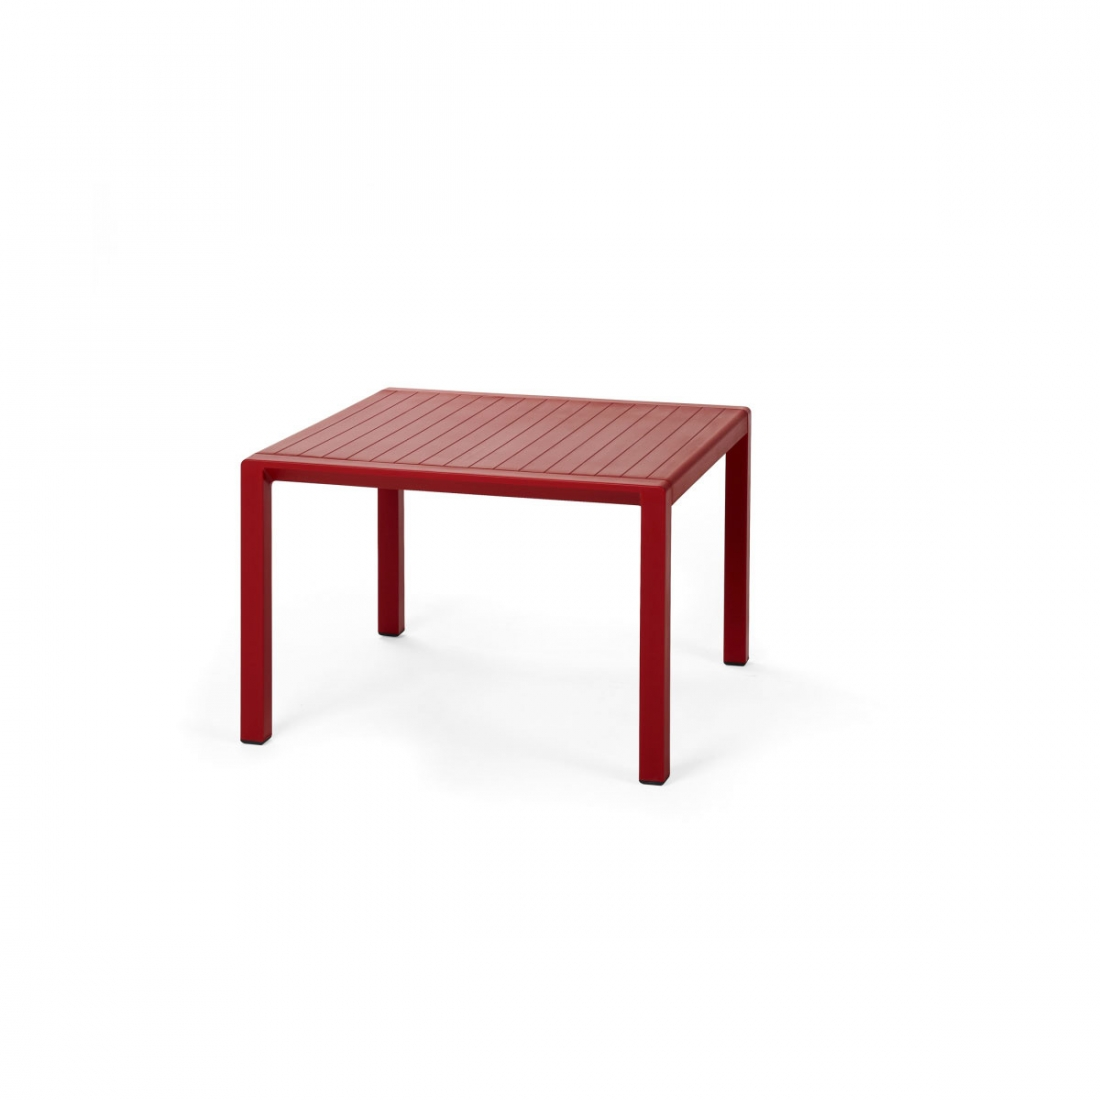 Table basse nardi aria 60 cm for Table basse 60 cm